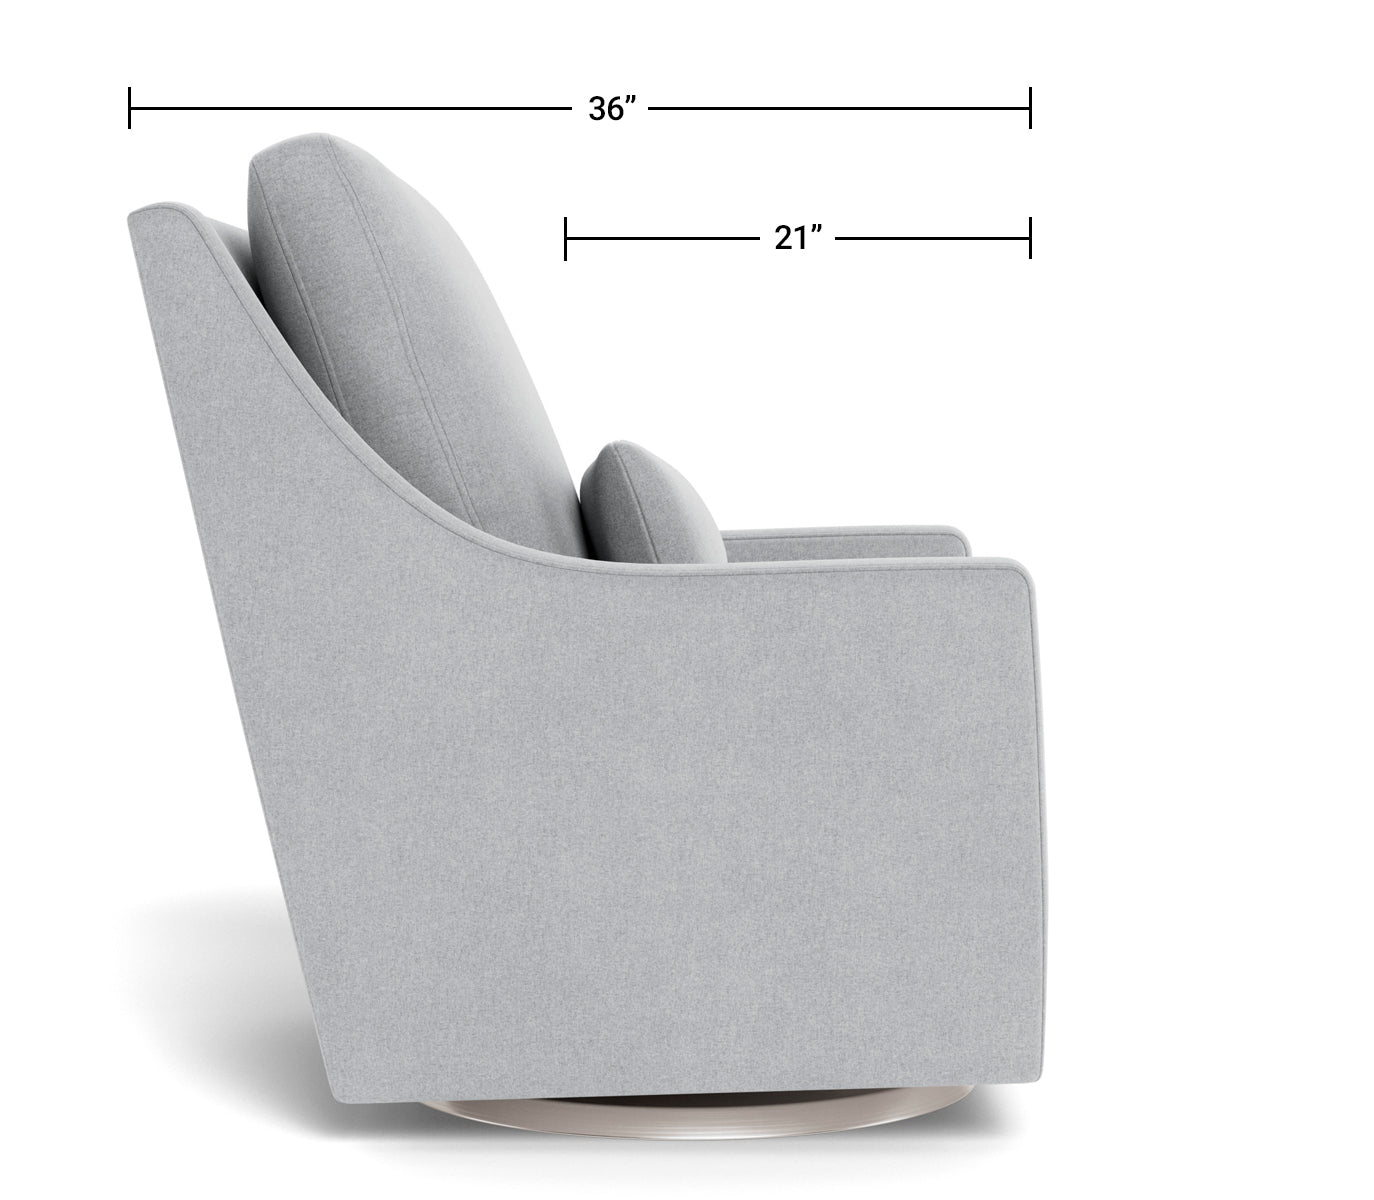 Modern Nursery Glider Chair - Vera Glider Chair Dimensions Side View